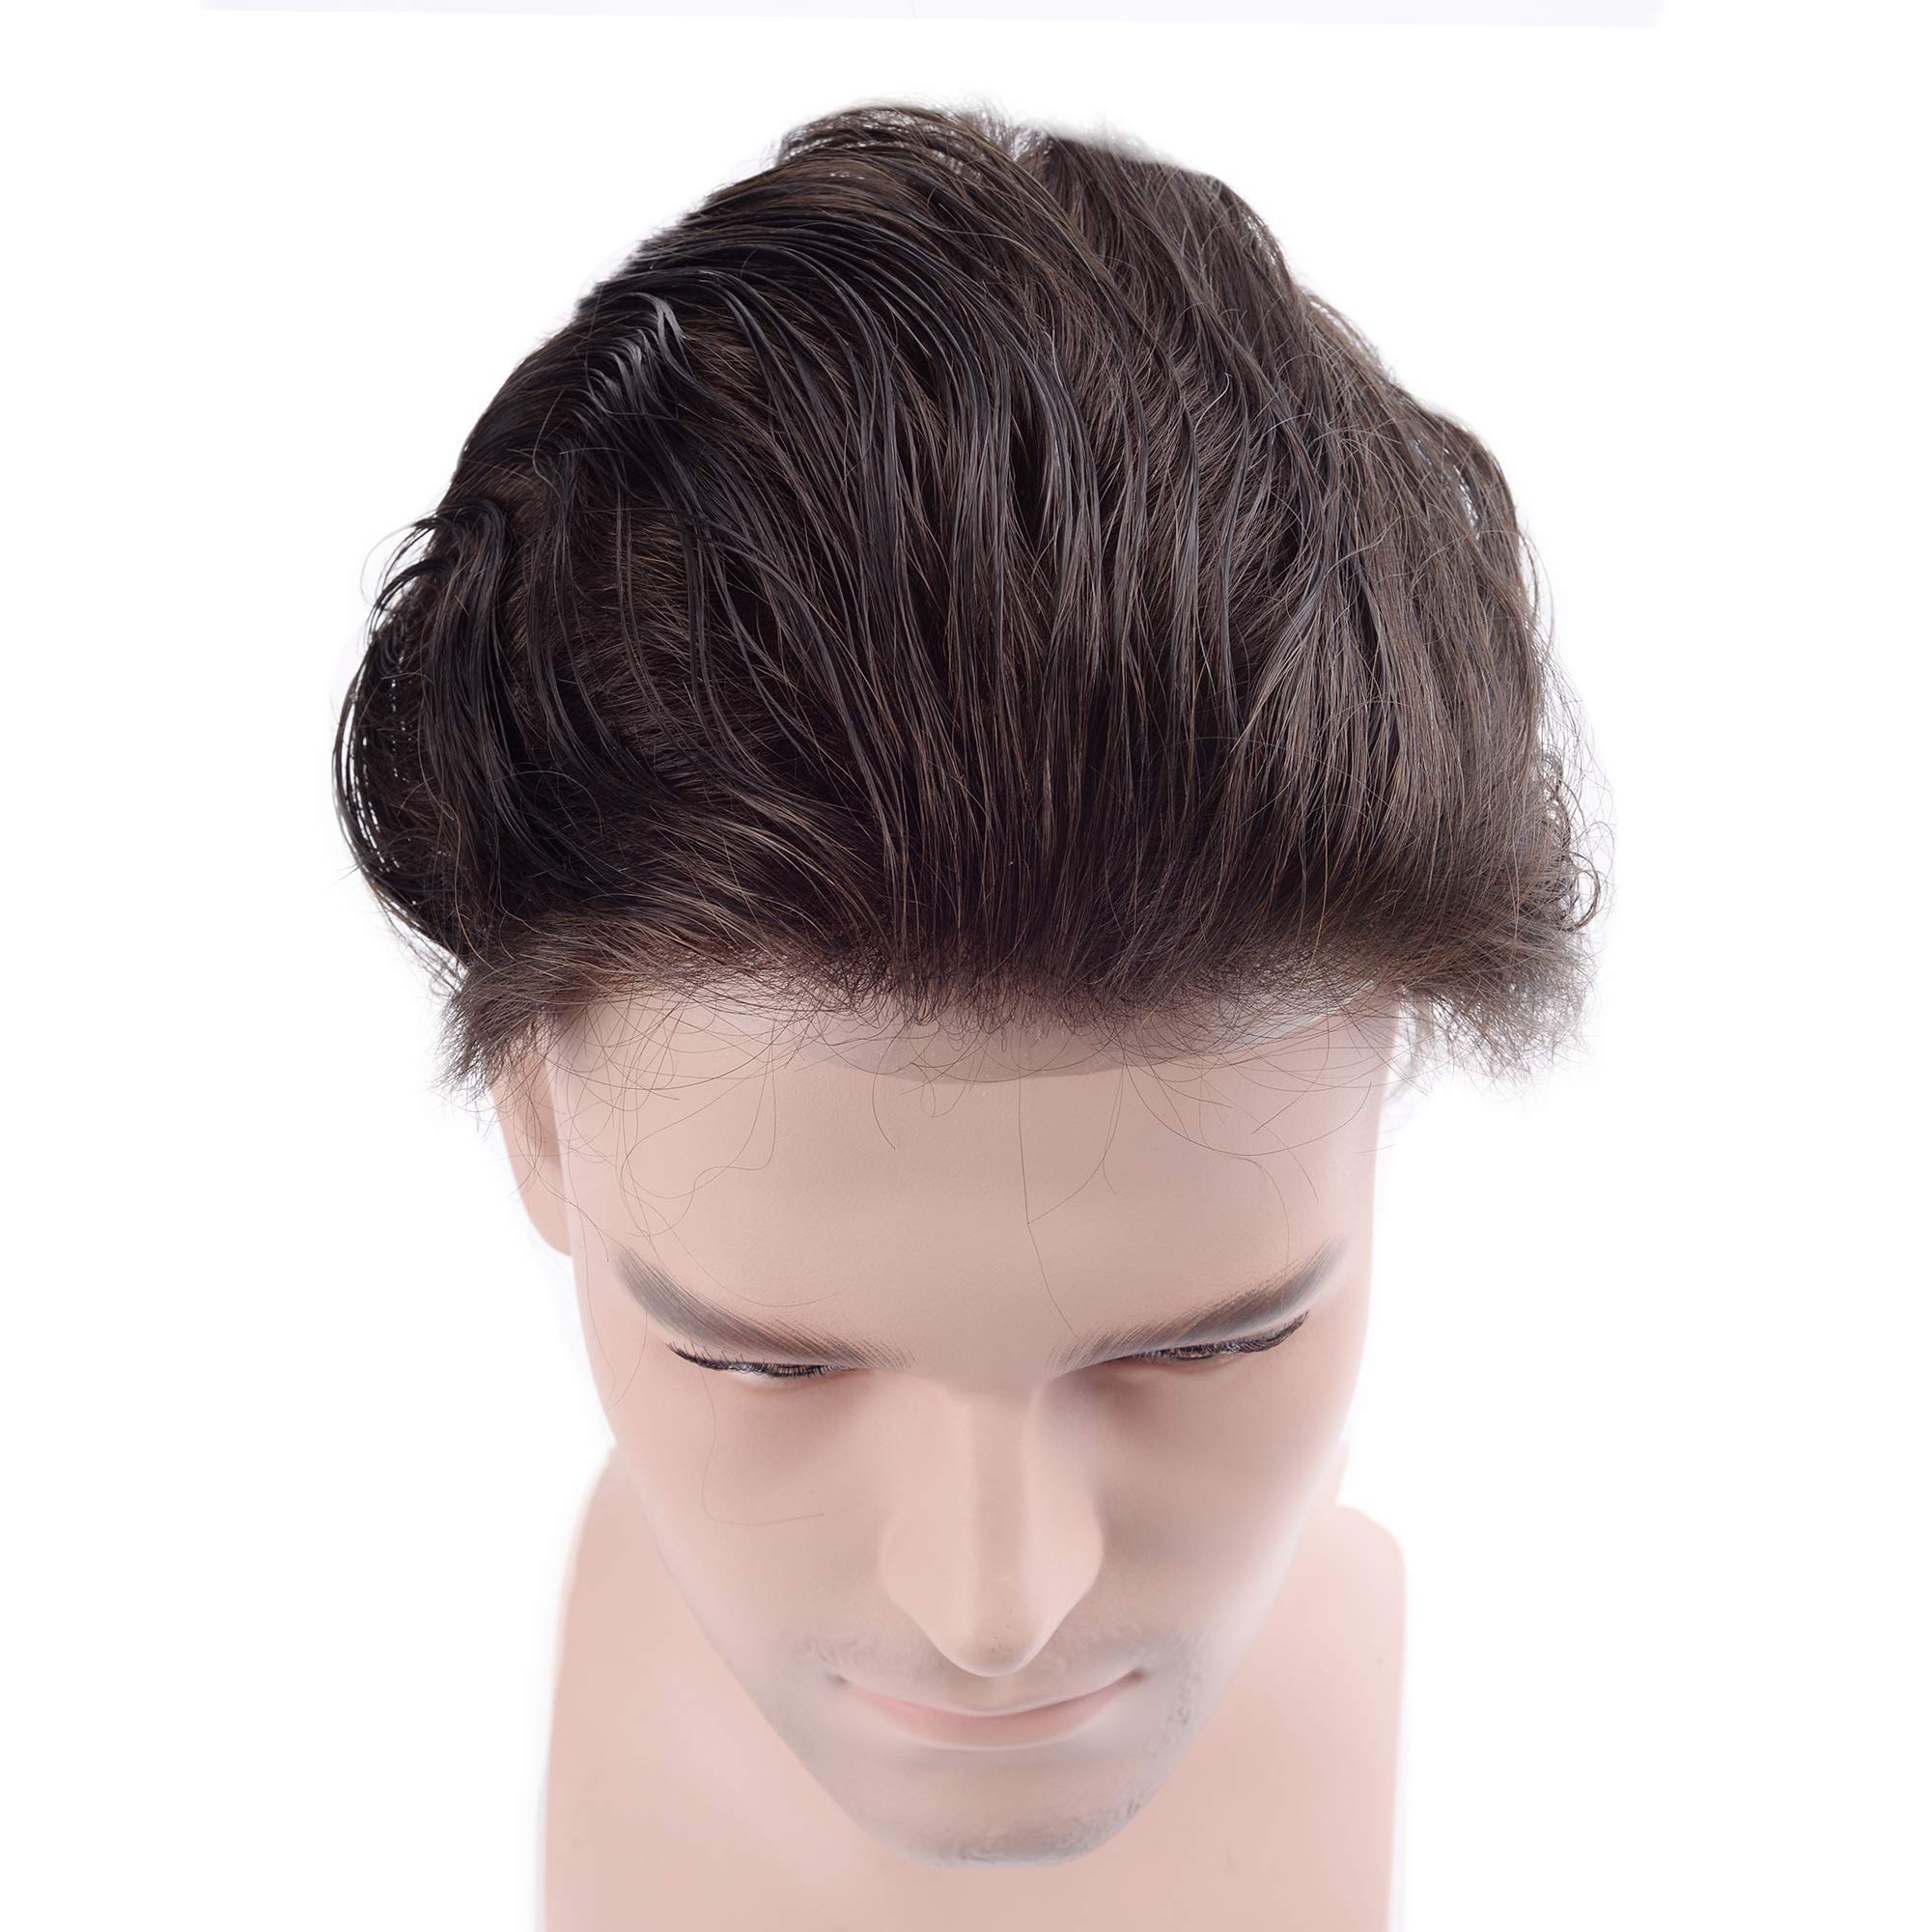 Lordhair Toupee Skin Men's Toupee Human Hair Pieces for Men Natural Hair Replacement Darkest Brown Color 1B (6 Colors Available) by Lordhair (Image #6)